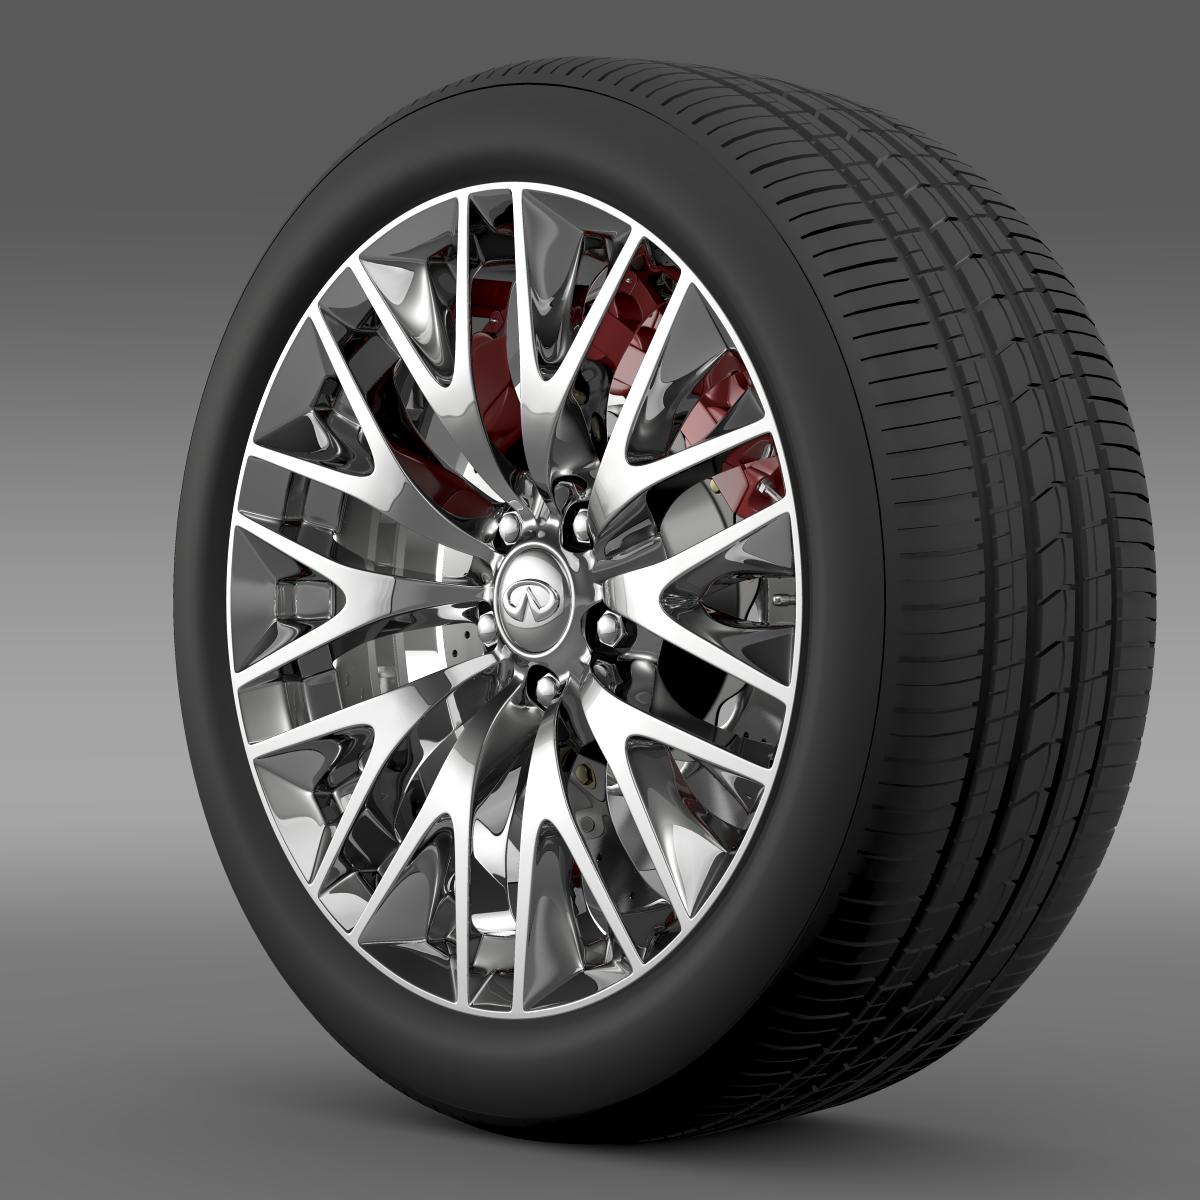 infinity ml wheel 3d model 3ds max fbx c4d lwo ma mb hrc xsi obj 210697